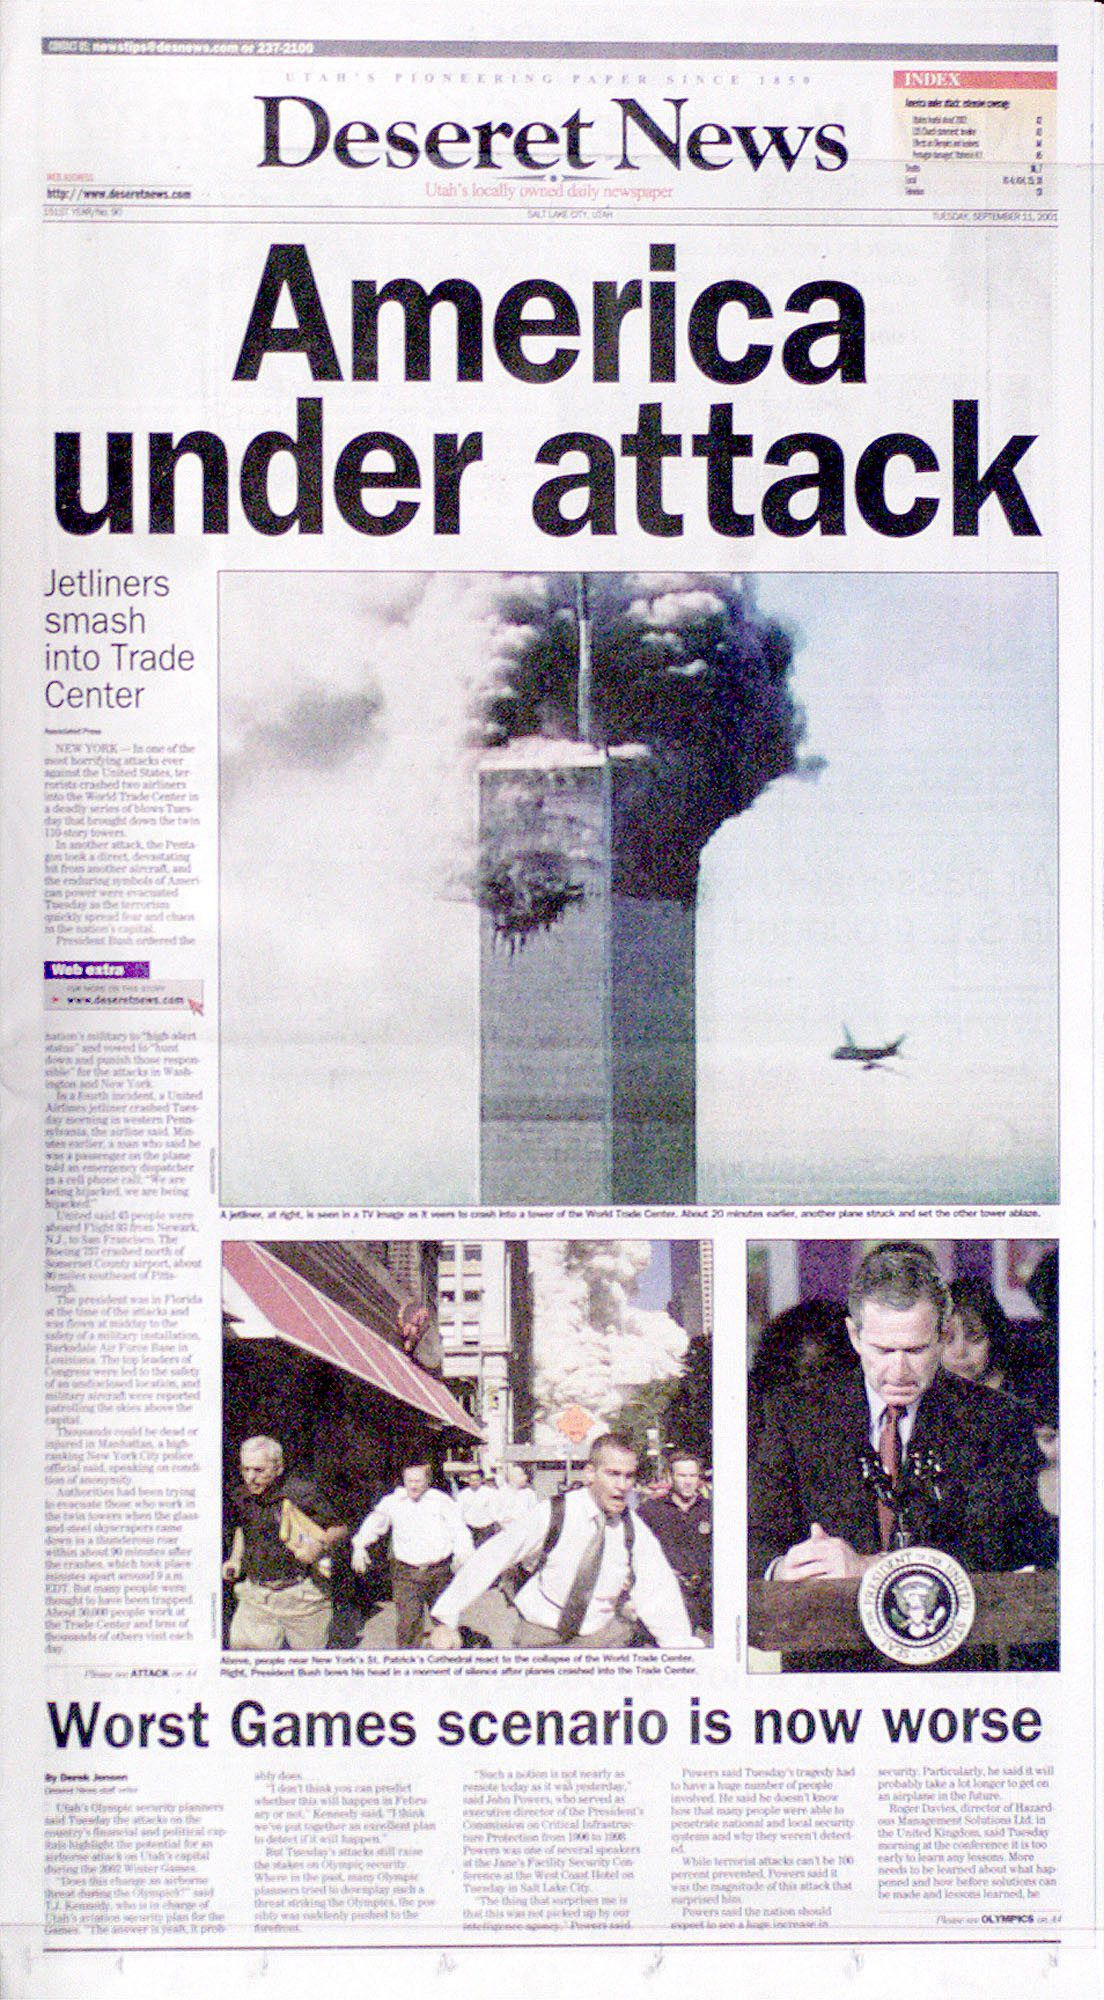 Deseret News front page September 11, 2001, the day of the World Trade Center and Pentagon attacks by terrorists.